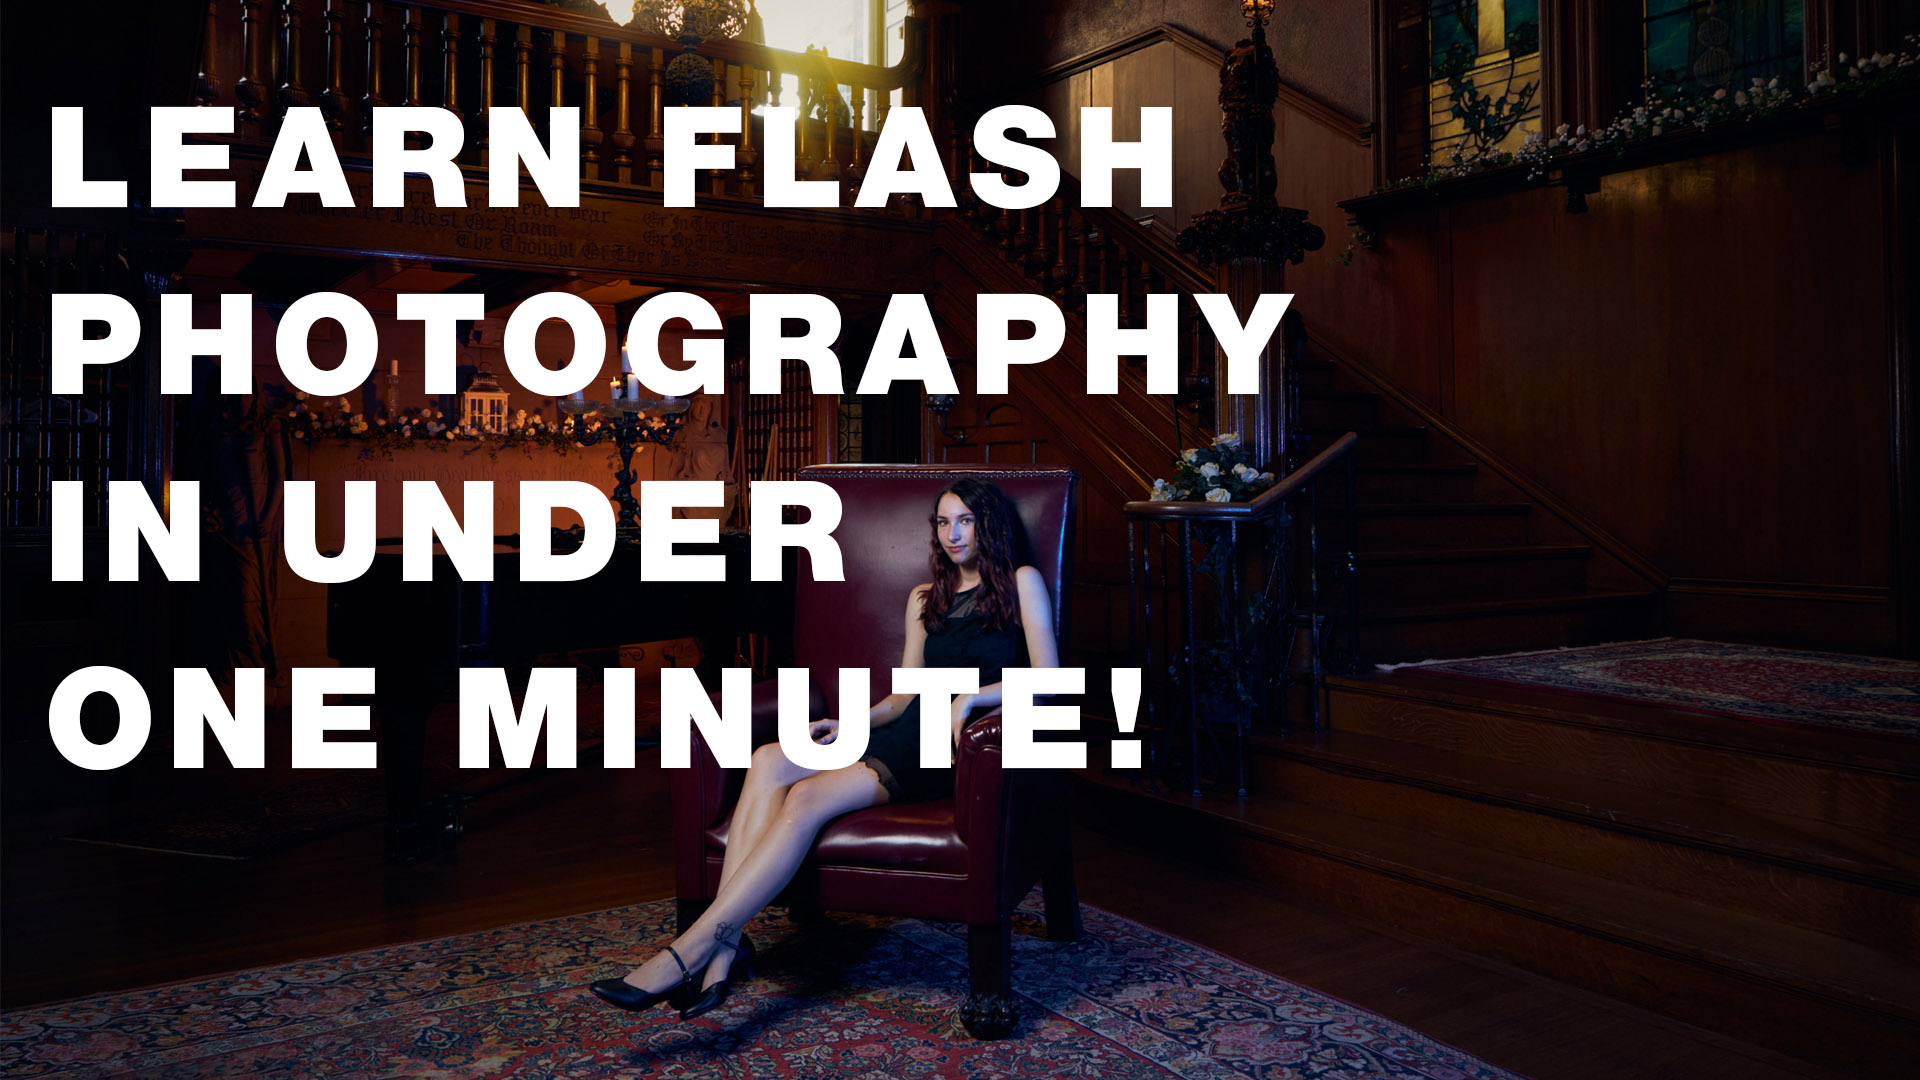 Intimidated by flash photography? You won't be after this quick video!